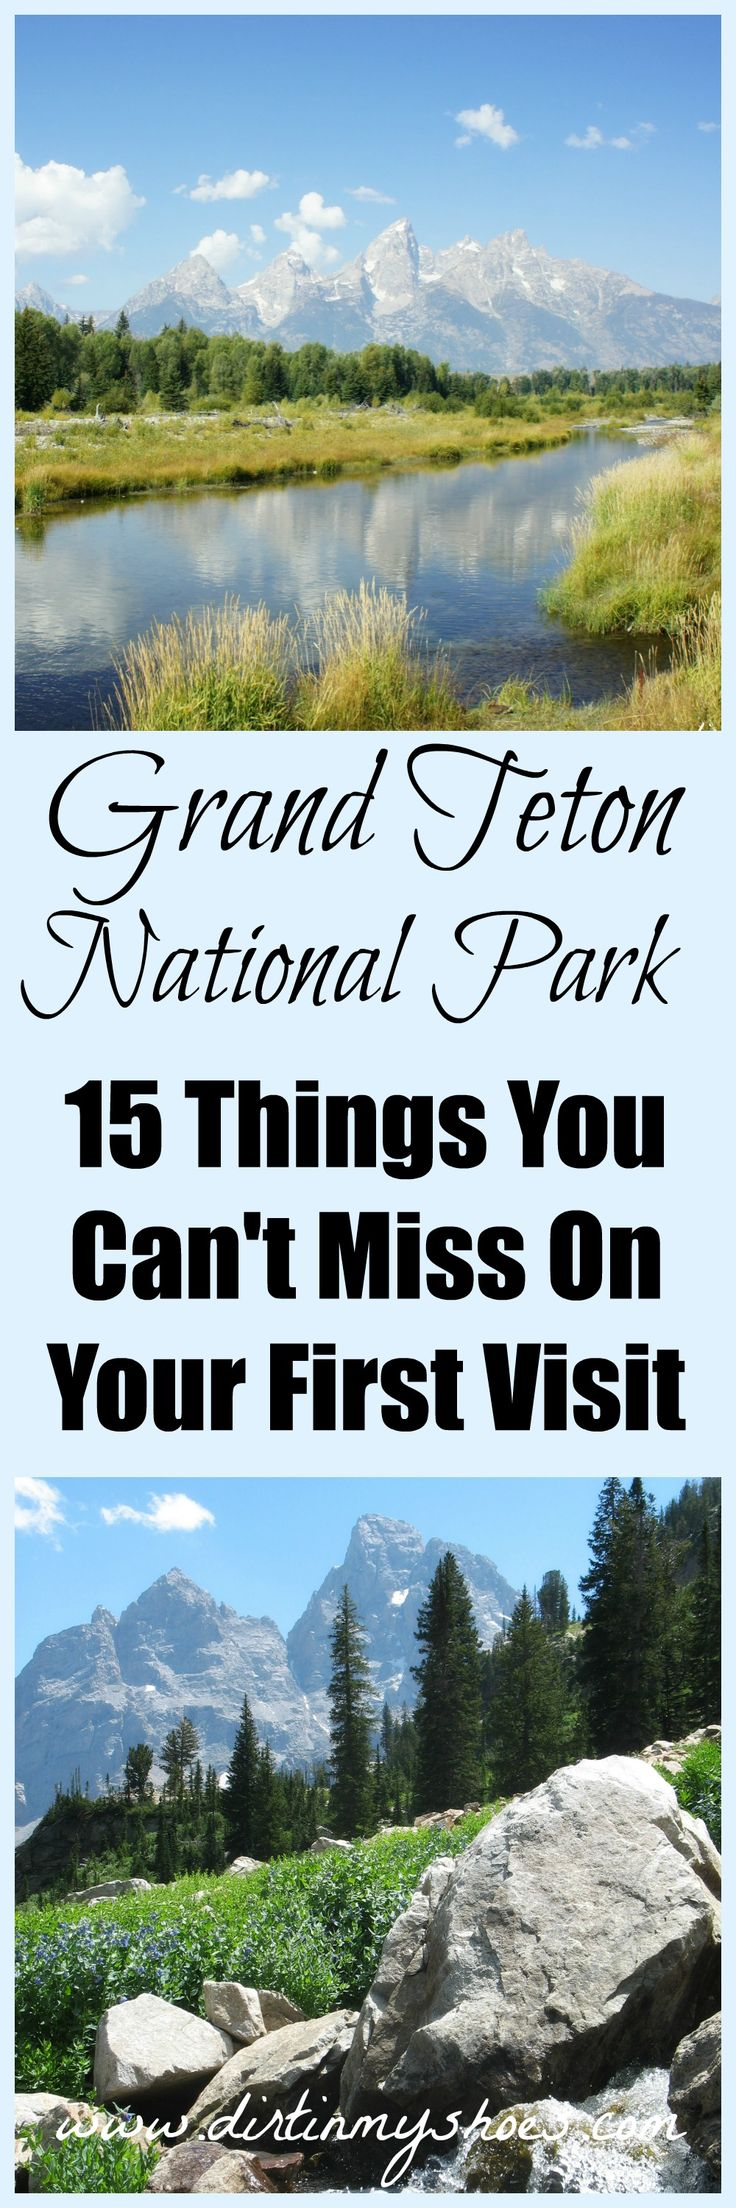 Grand Teton National Park – 15 Hikes and other incredible activity ideas from a former park ranger | Dirt